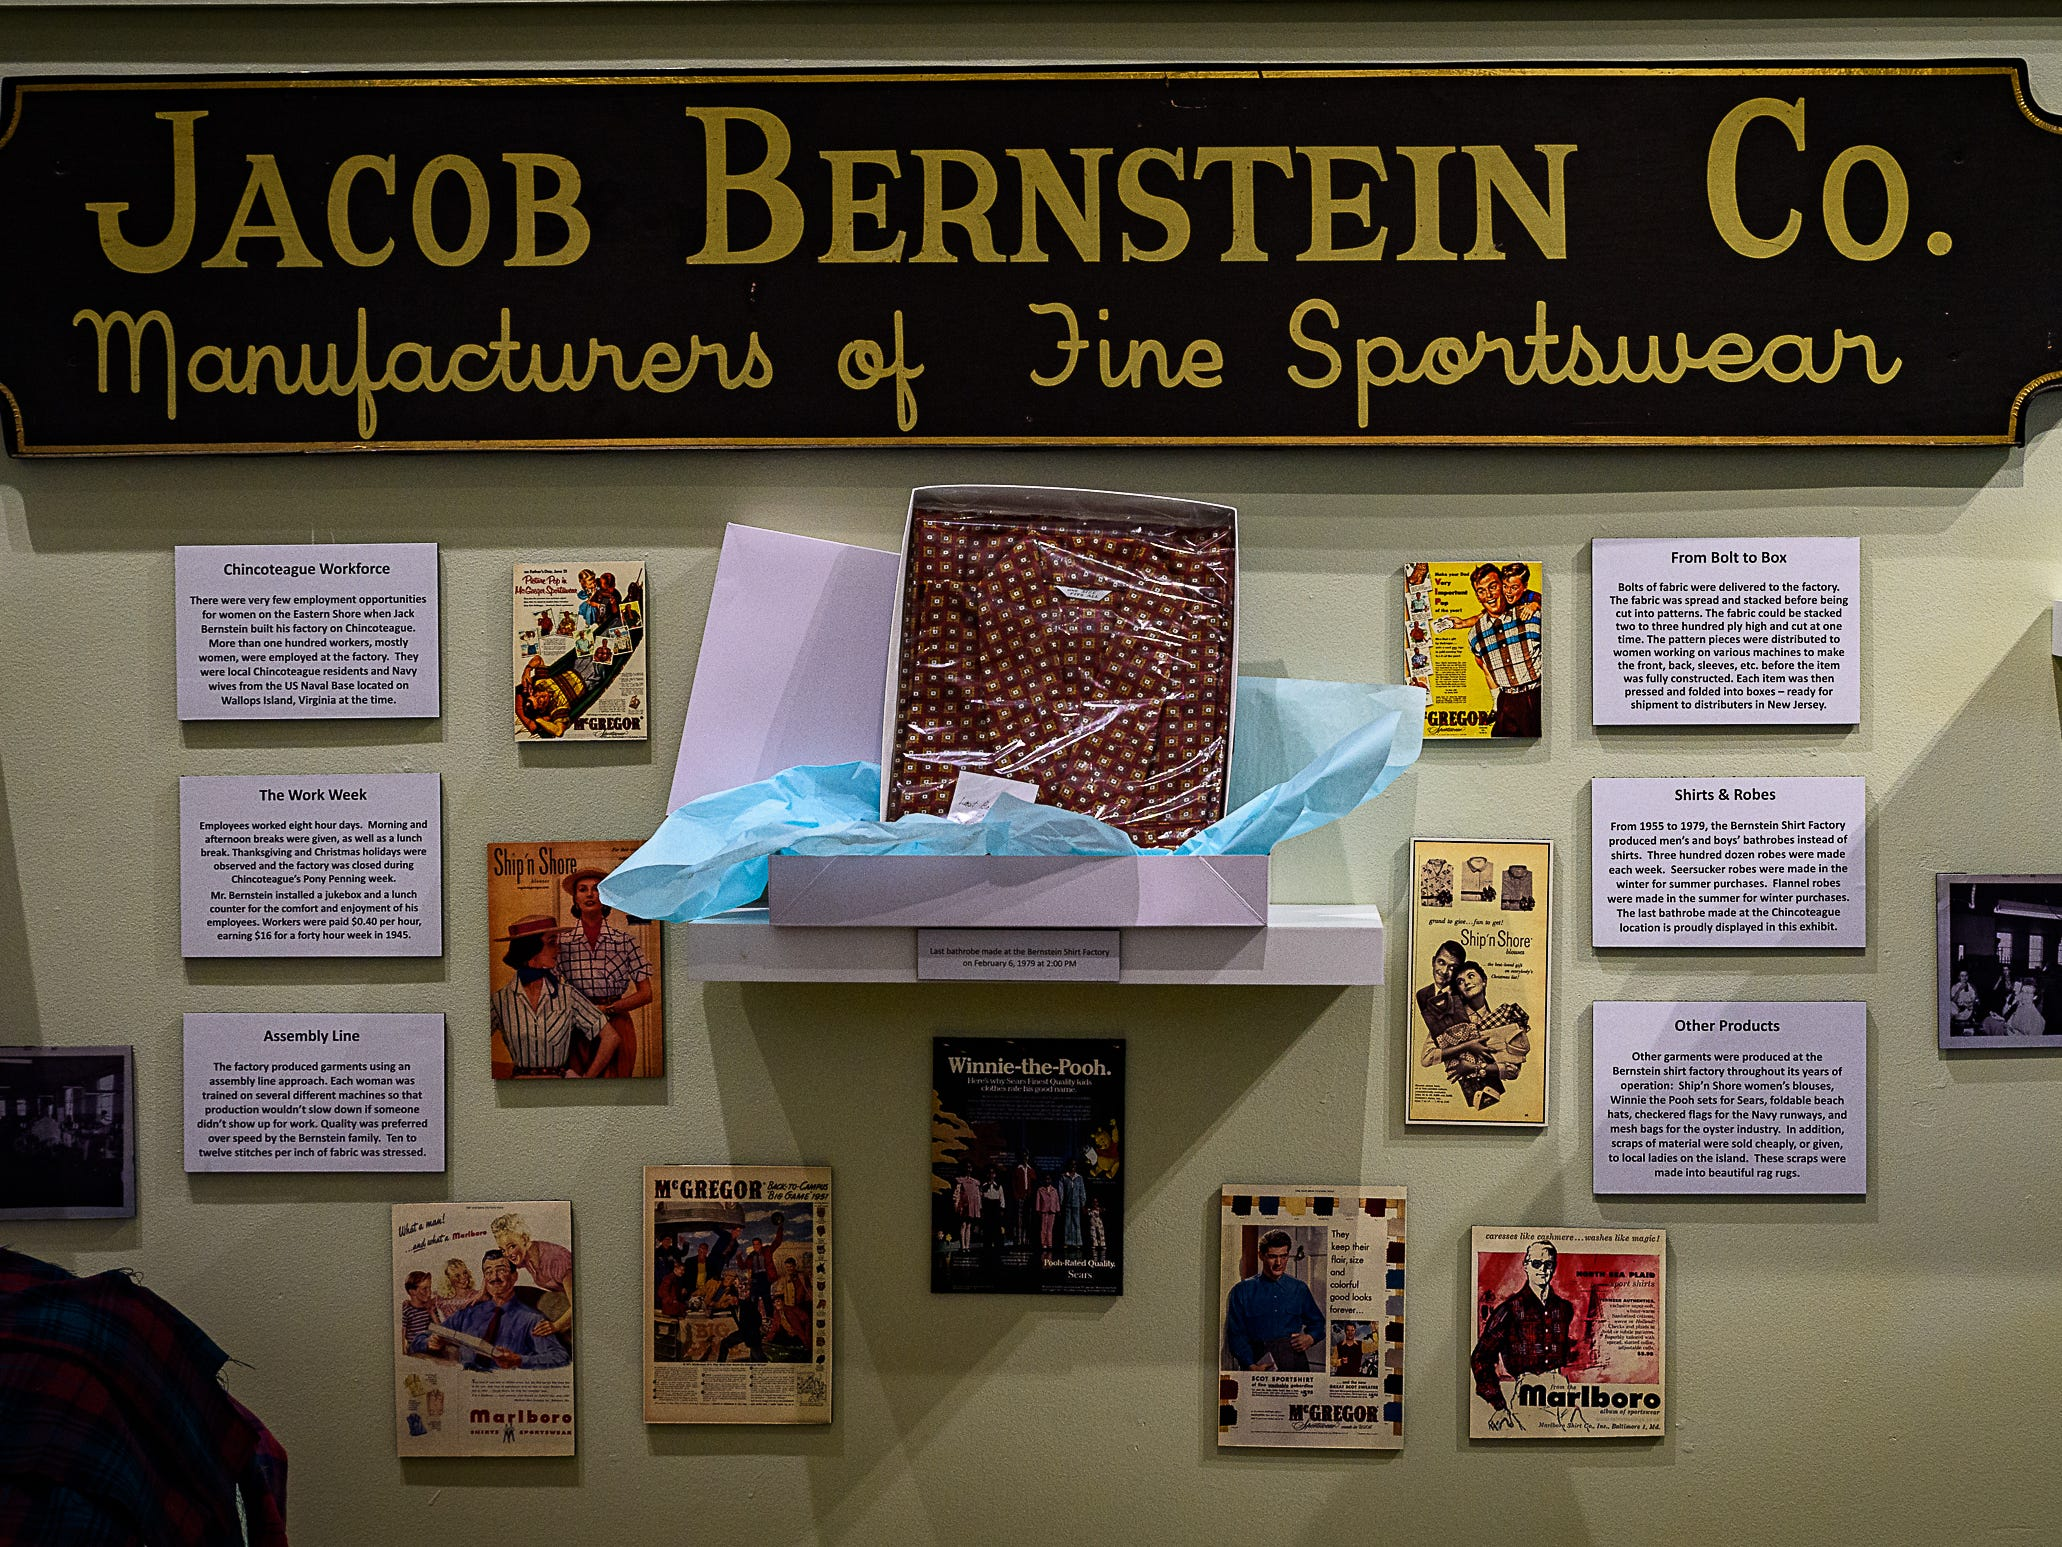 A showcase of the Jacob Berstein Co., a clothing manufacturer with factories on Chincoteague and elsewhere on Delmarva, one of the three new exhibits at the Museum of Chincoteague.